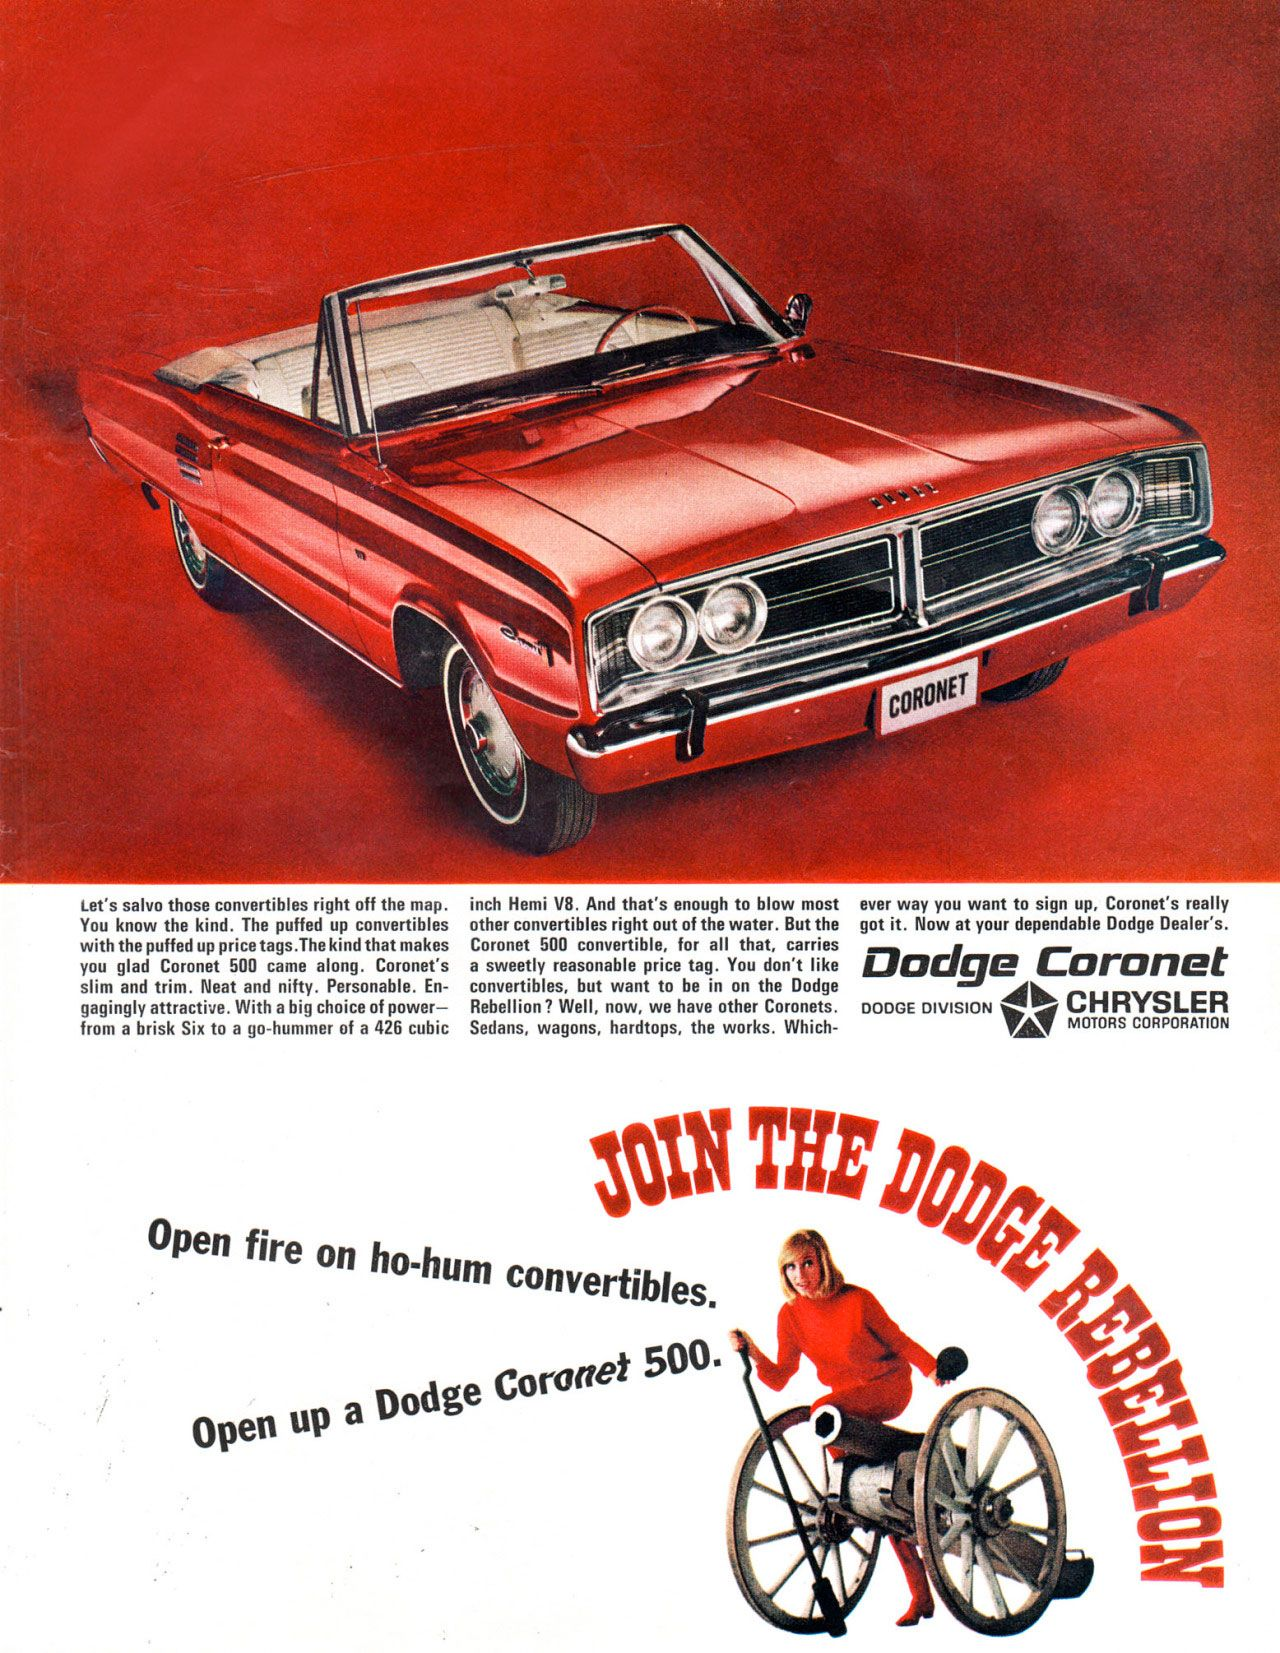 Open fire on ho-hum convertibles. Open up a Dodge Coronet 500. Join the Dodge rebellion.